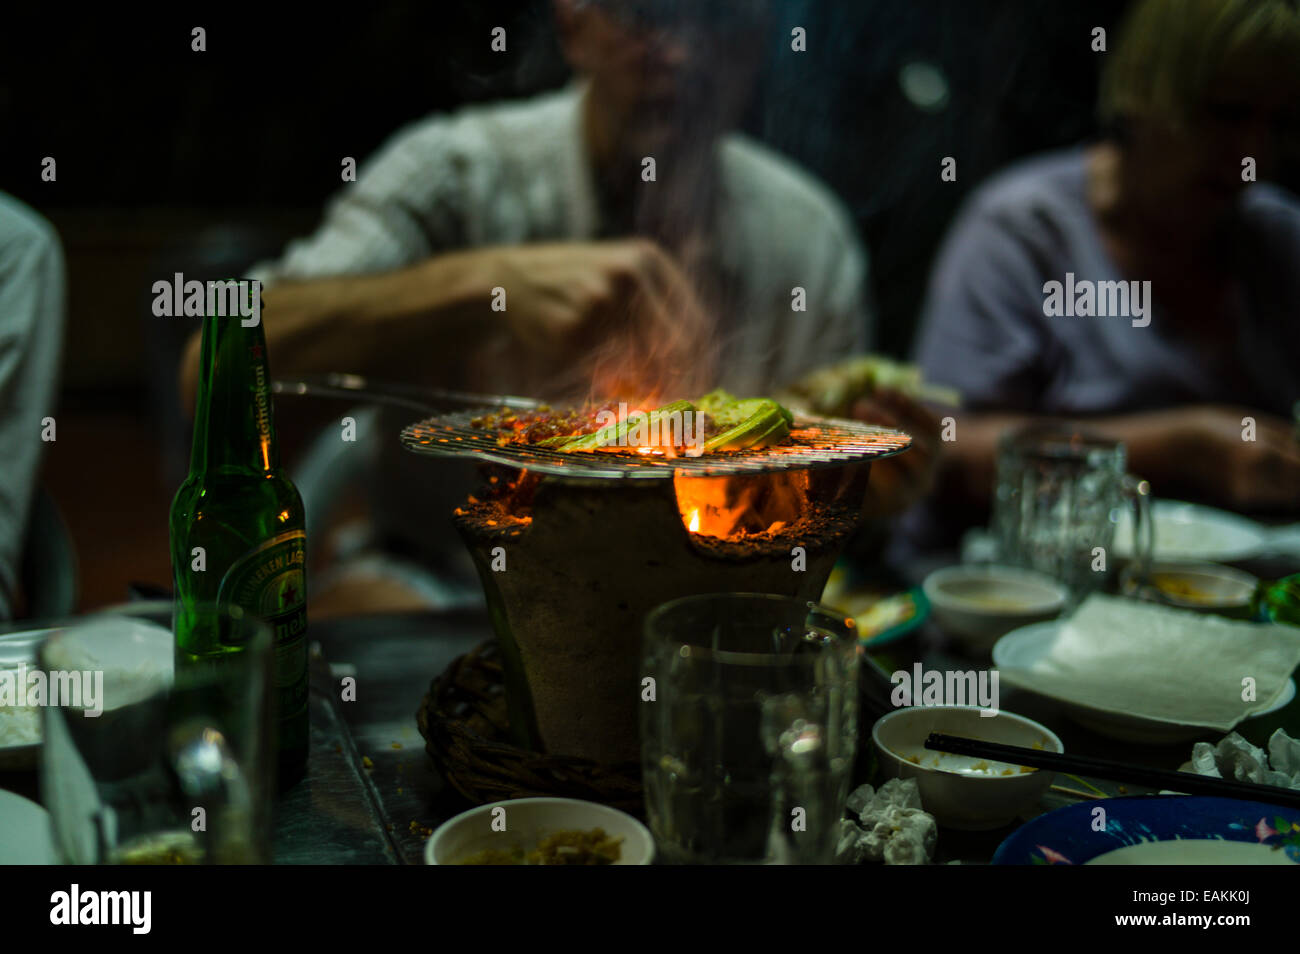 Beef And Okra Cooking On A Tabletop Charcoal Grill In An Outdoor Restaurant  In Tra Vinh, Vietnam.